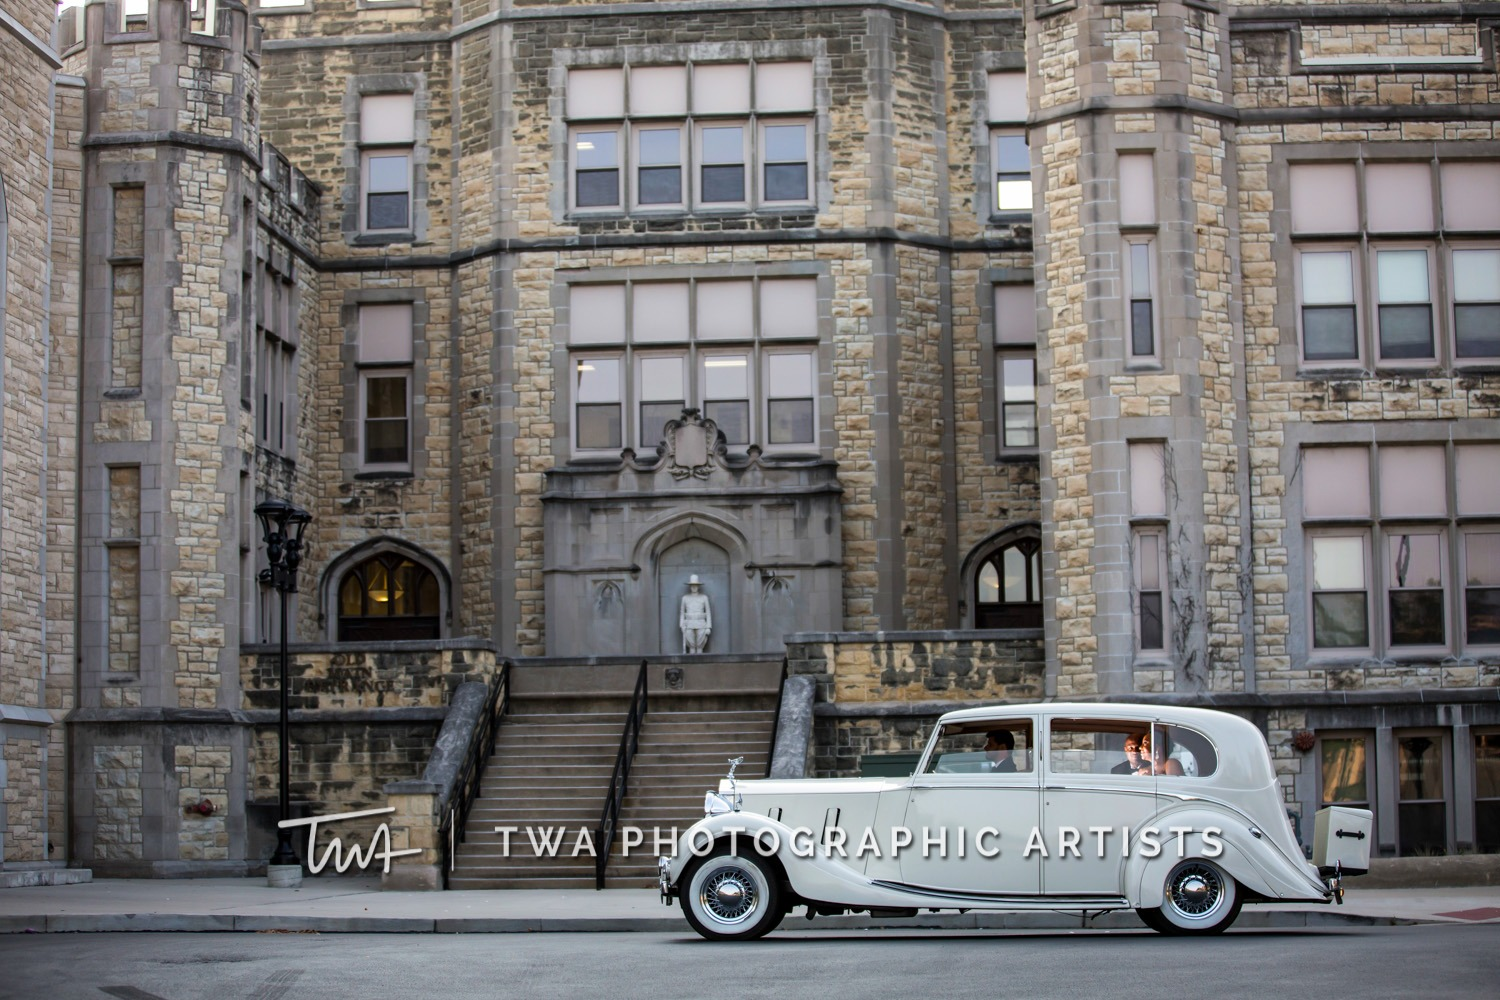 Chicago-Wedding-Photographer-TWA-Photographic-Artists-Haley-Mansion_Graves_Moffett_JM-027_0408